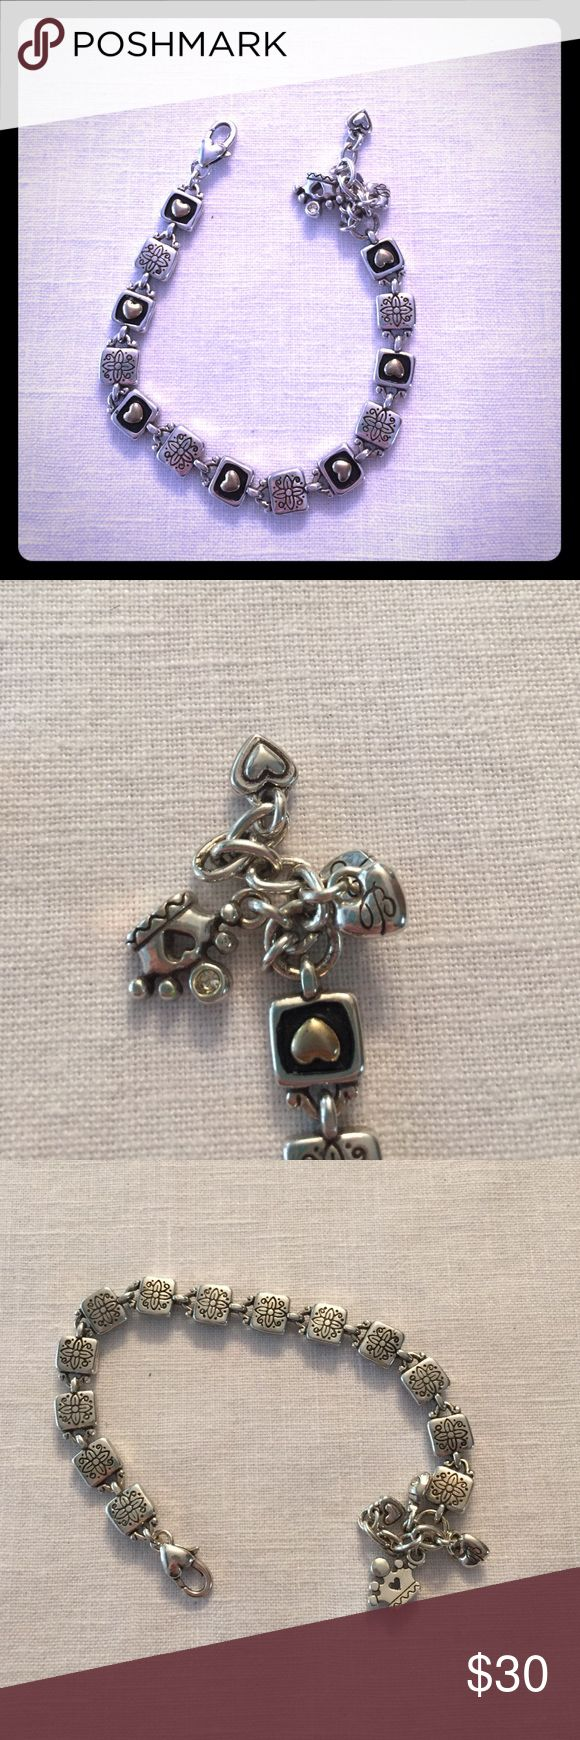 Brighton Paver Bracelet with Charms For sale today we have a Brighton Paver Bracelet with charms. In good condition. Charms are of a crown with rhinestone, ladybug with two rhinestones, a heart and a Brighton heart. Brighton Jewelry Bracelets